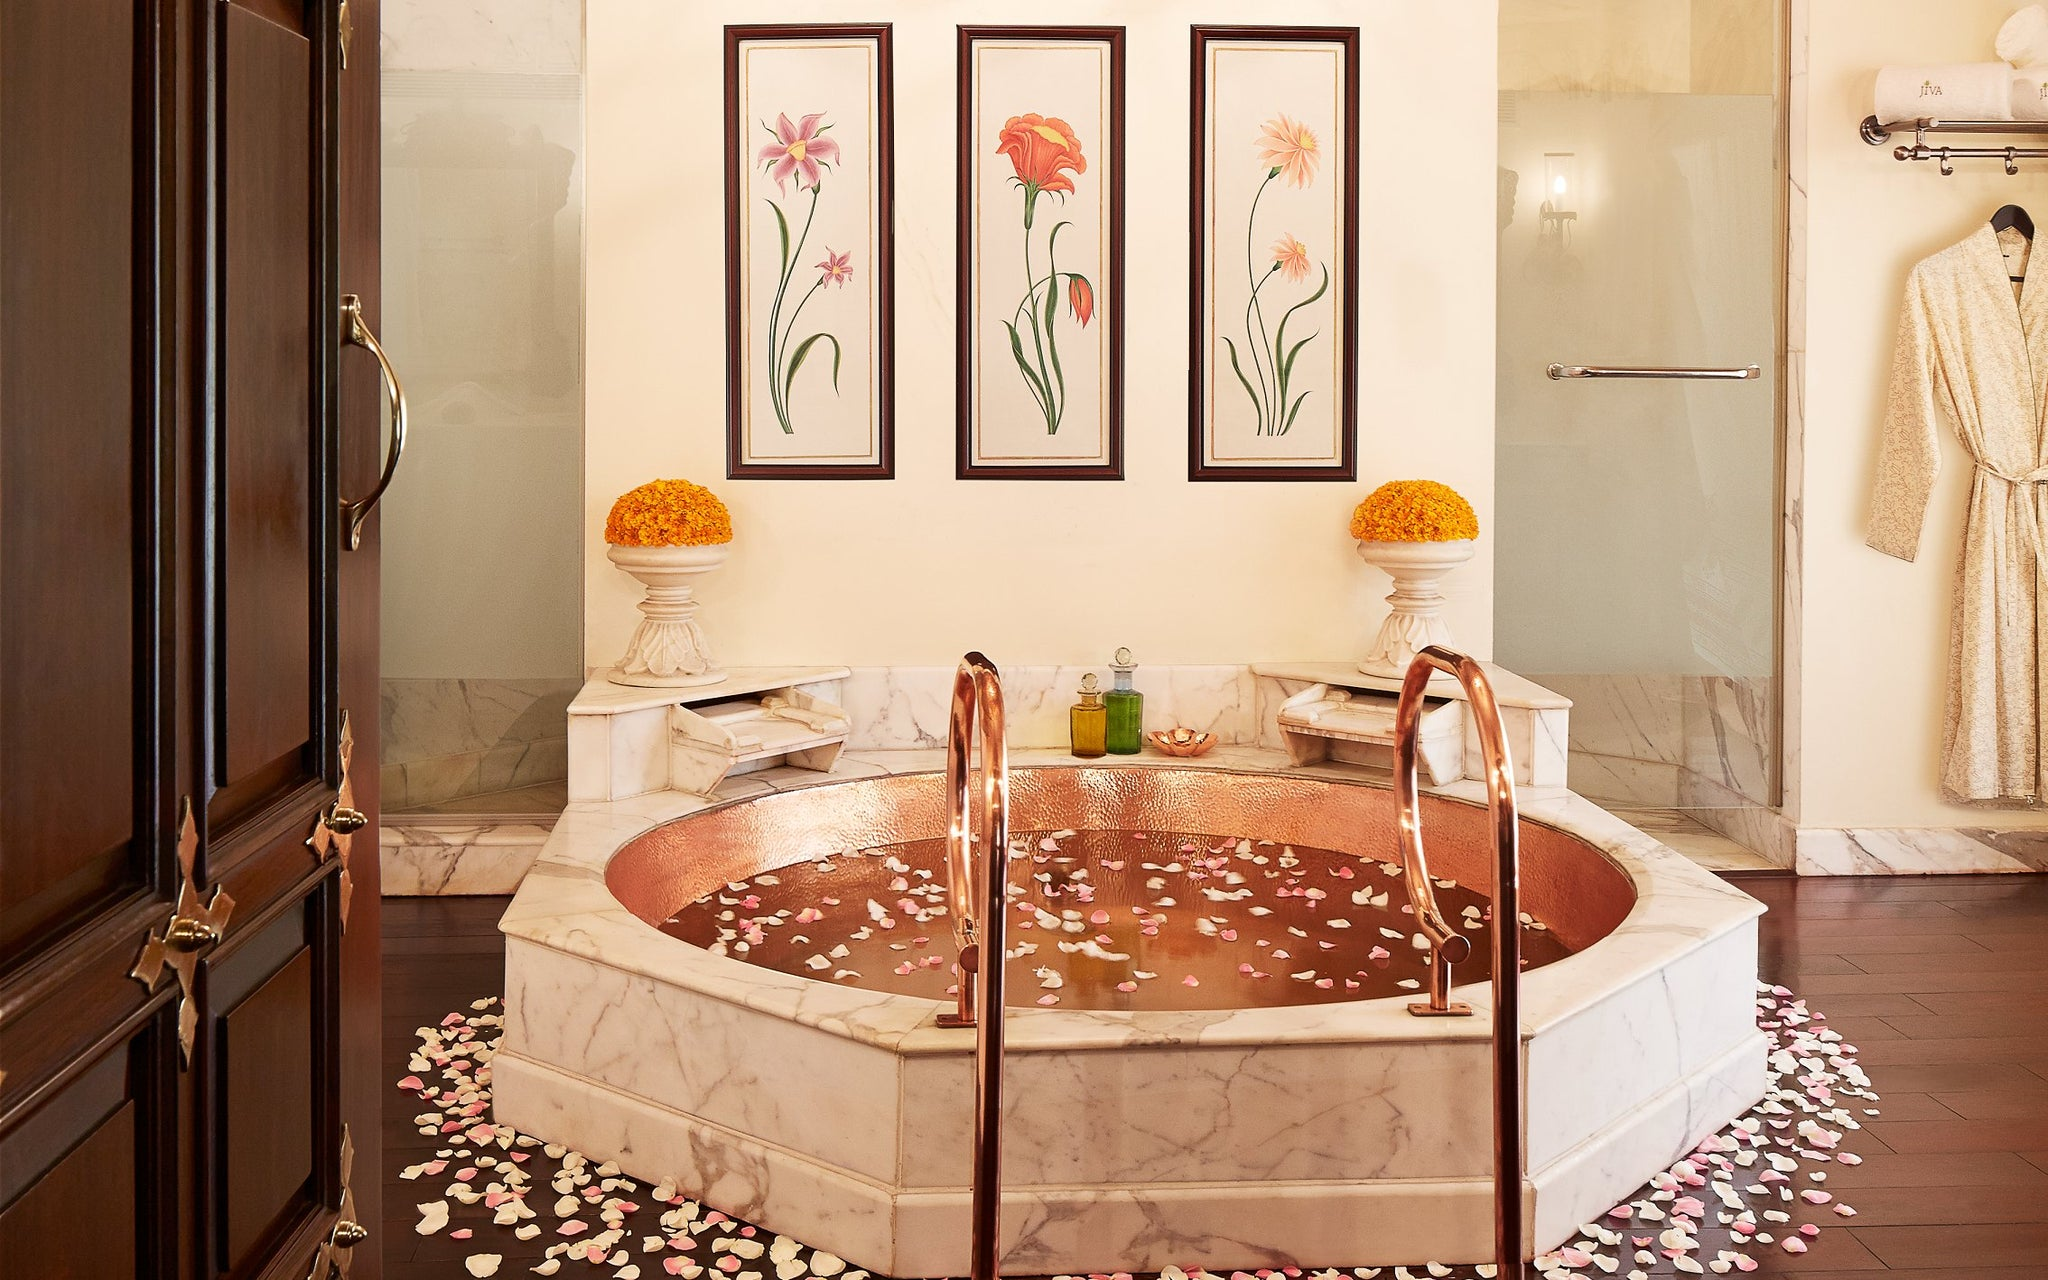 Malavara Top Luxury Ayurveda Retreats - Rambagh Palace Jacuzzi